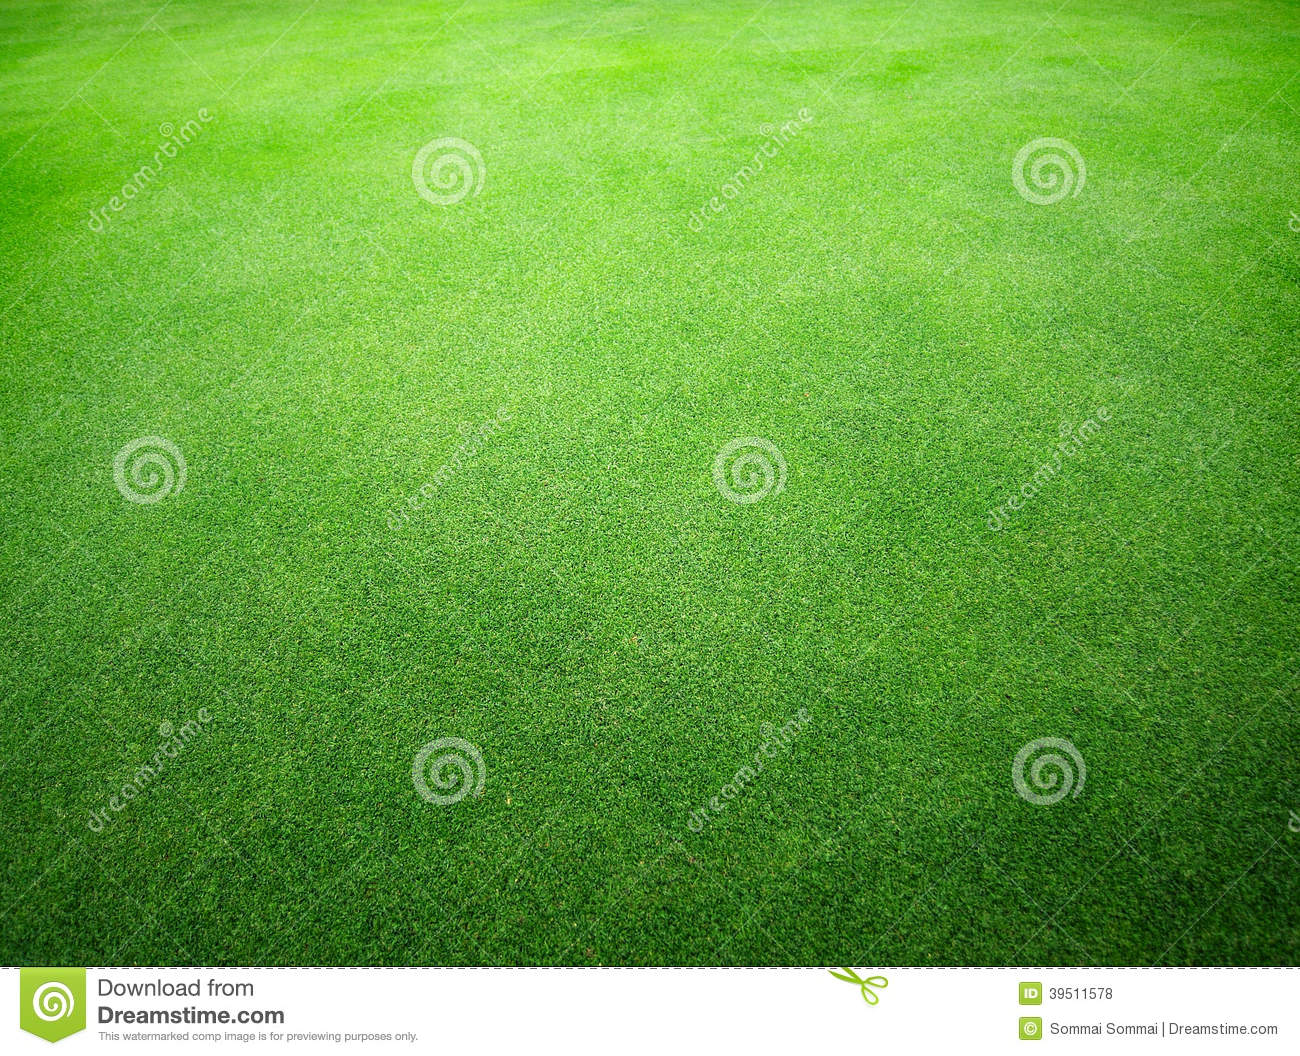 Beautiful natural green grass texture